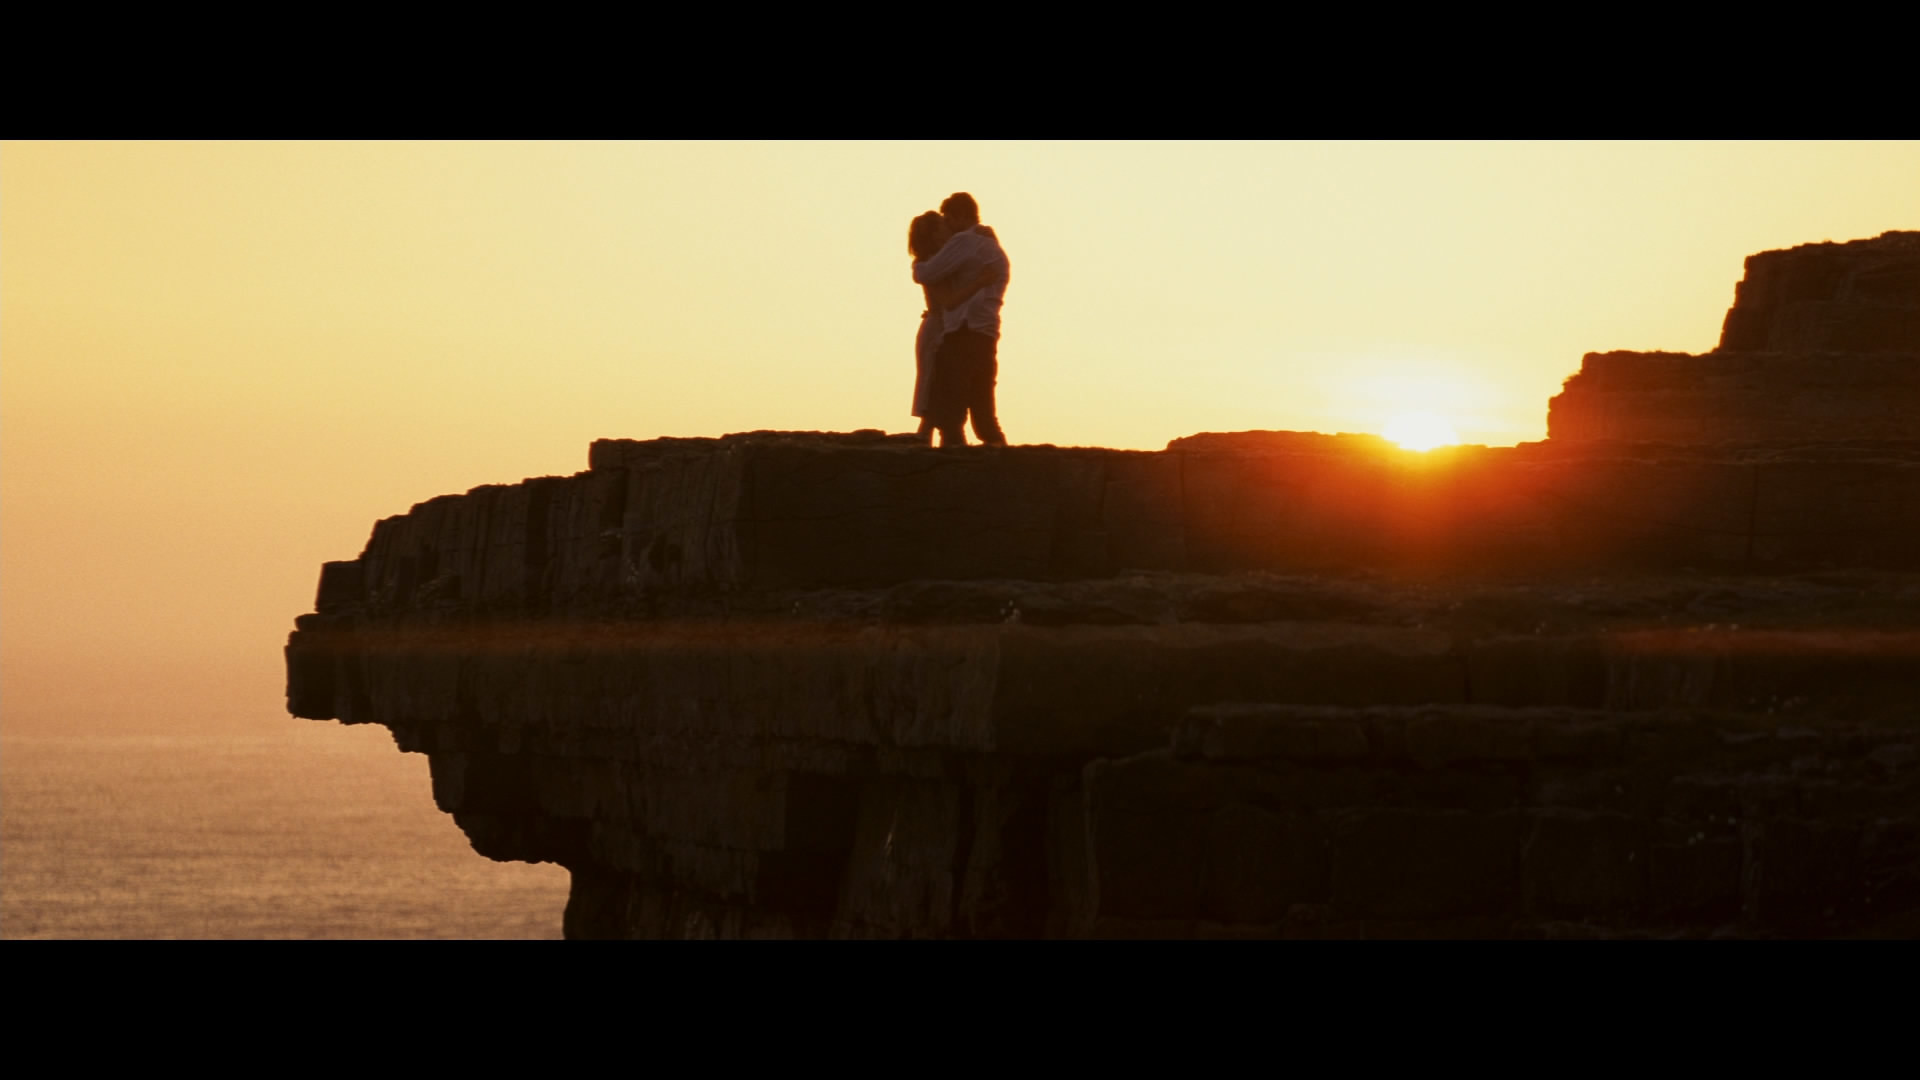 1920x1080 Final scene in the movie leap year at Dun Aengus Fort